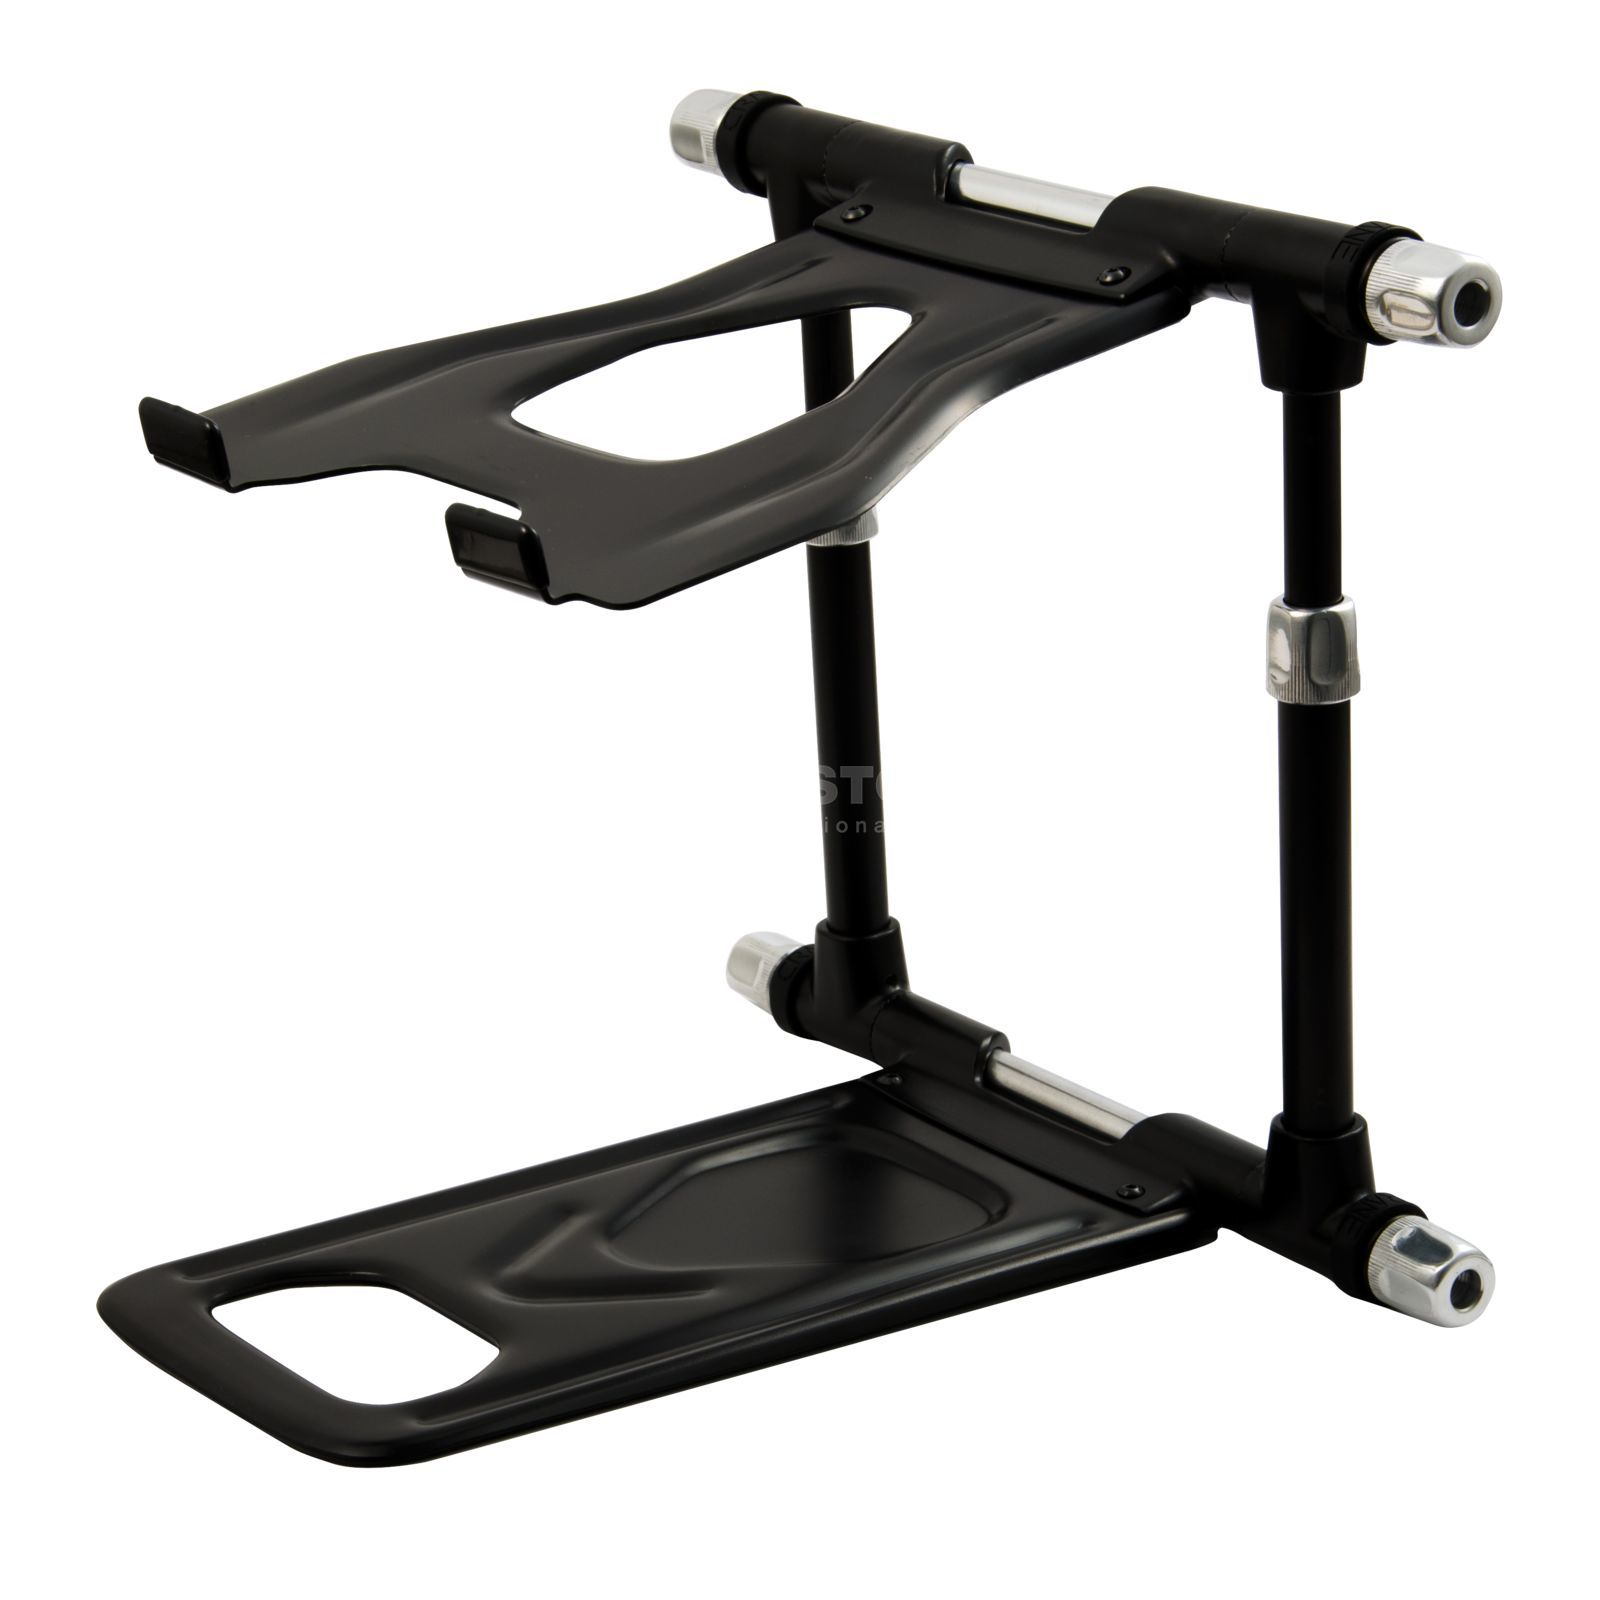 Crane Crane Stand Elite CV5 Laptop Stand, black Product Image